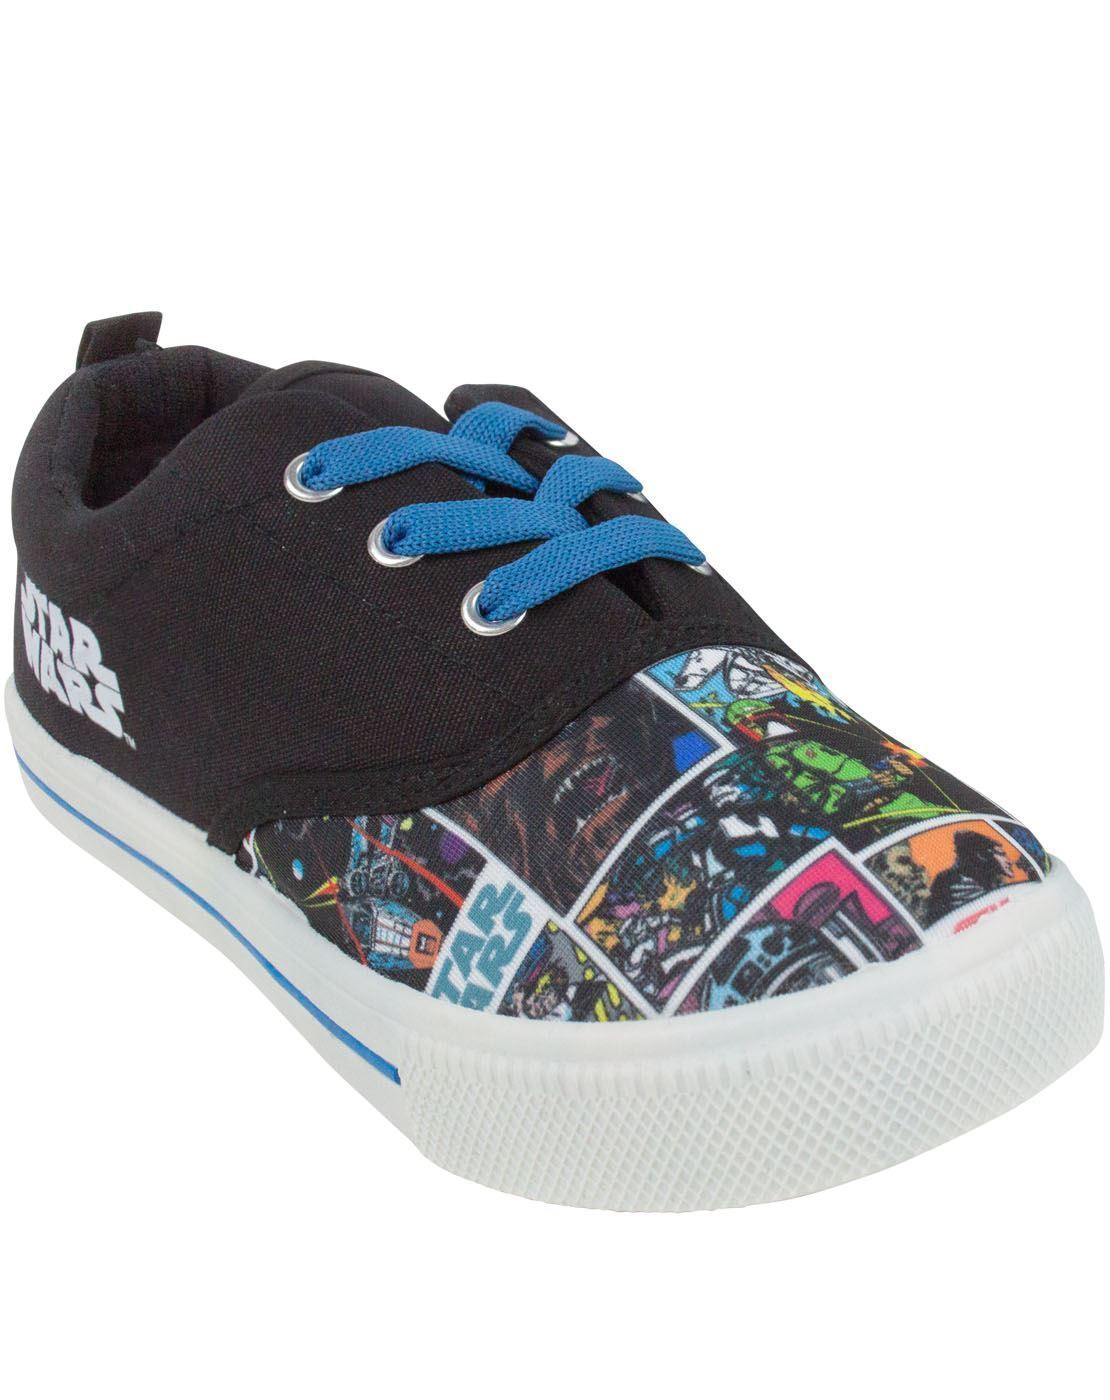 Star Wars Comic Boy's Trainers